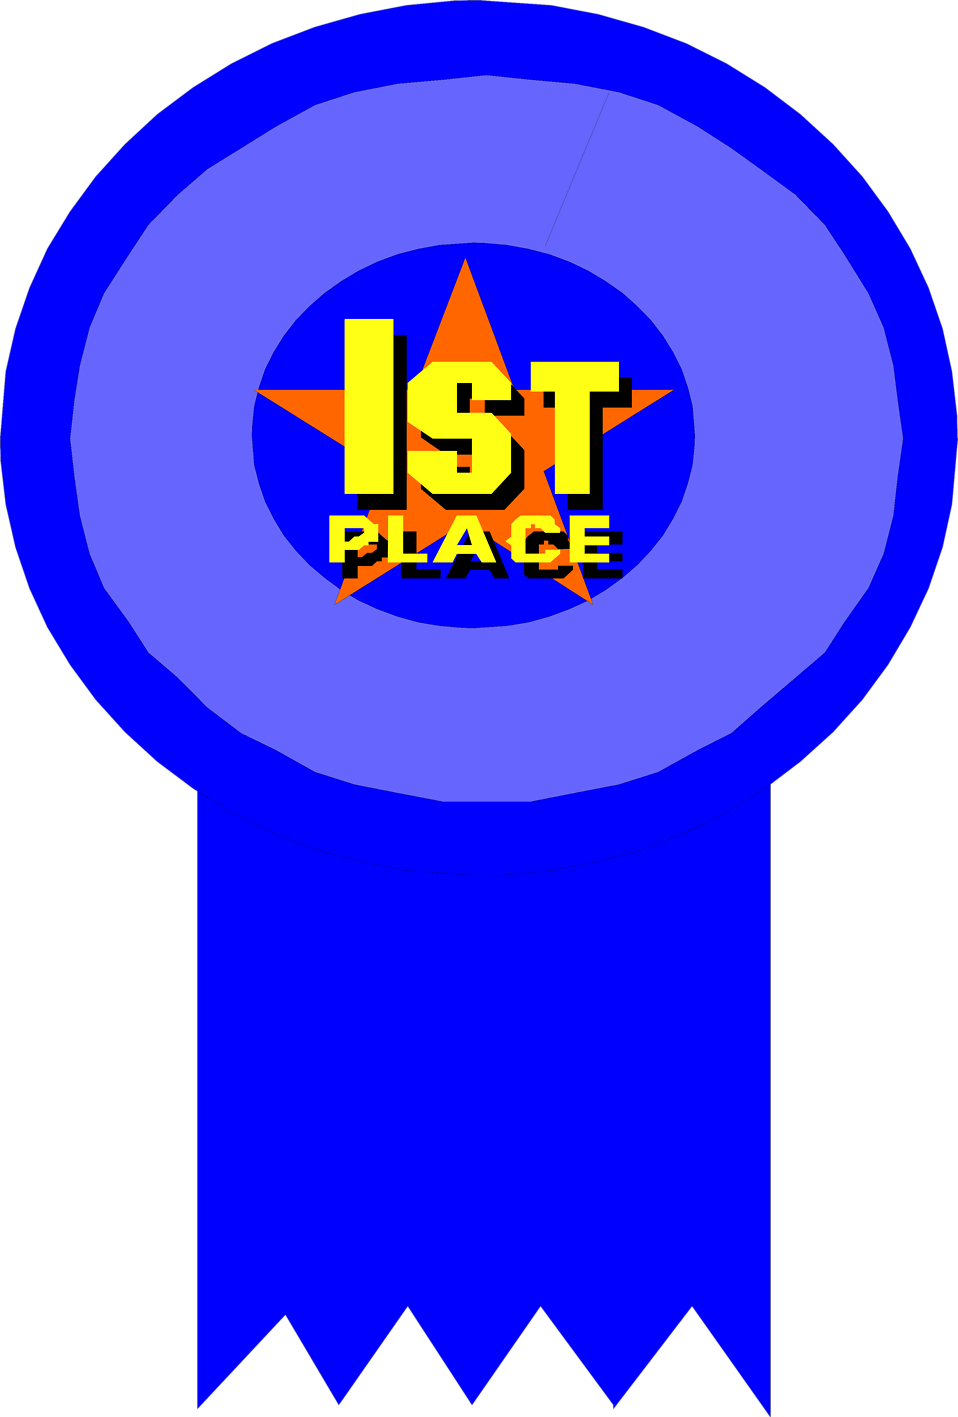 Illustration Of A 1st Place Ribbon   Free Stock Photo